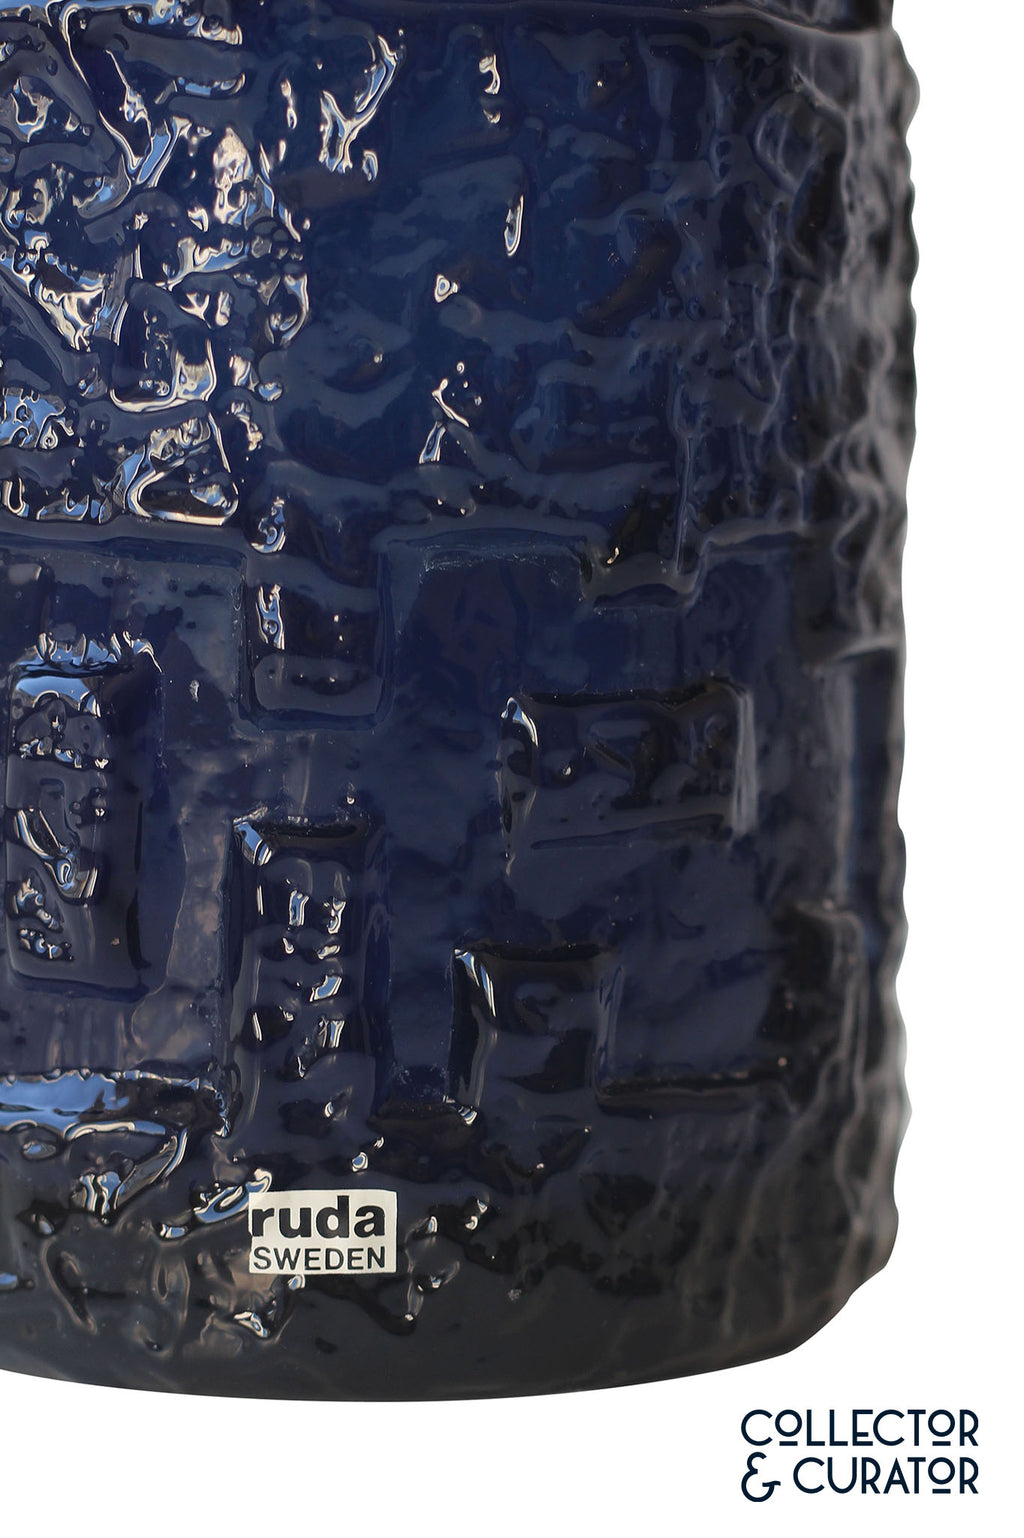 Ruda glass vase in cobalt blue by Göte Augustsson - Collector & Curator